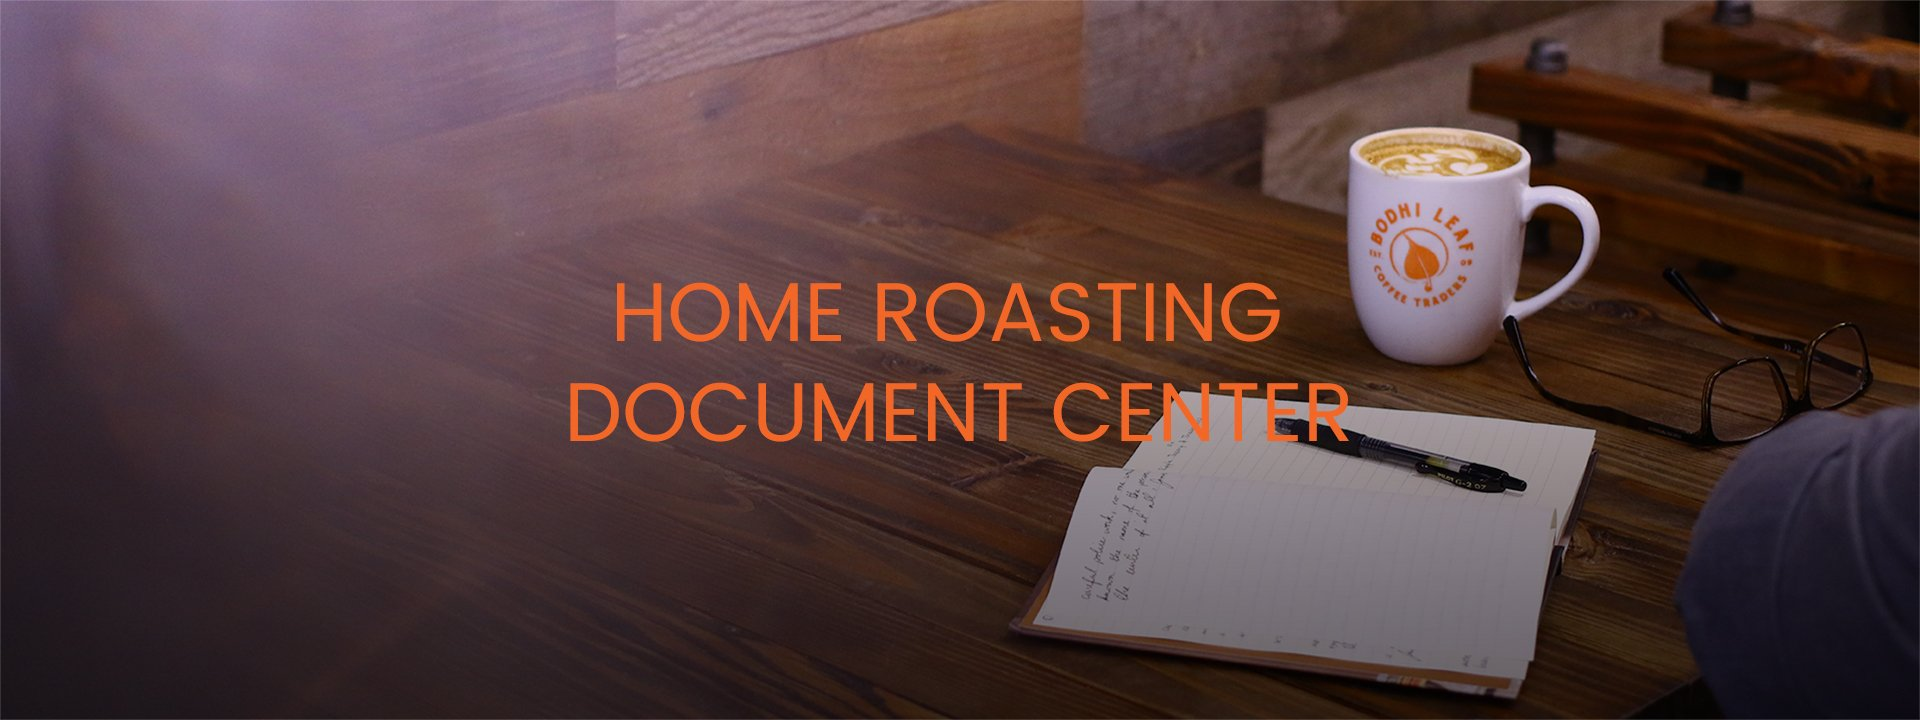 HOME ROASTING DOCUMENT CENTER - MUG OF COFFEE AND JOURNAL